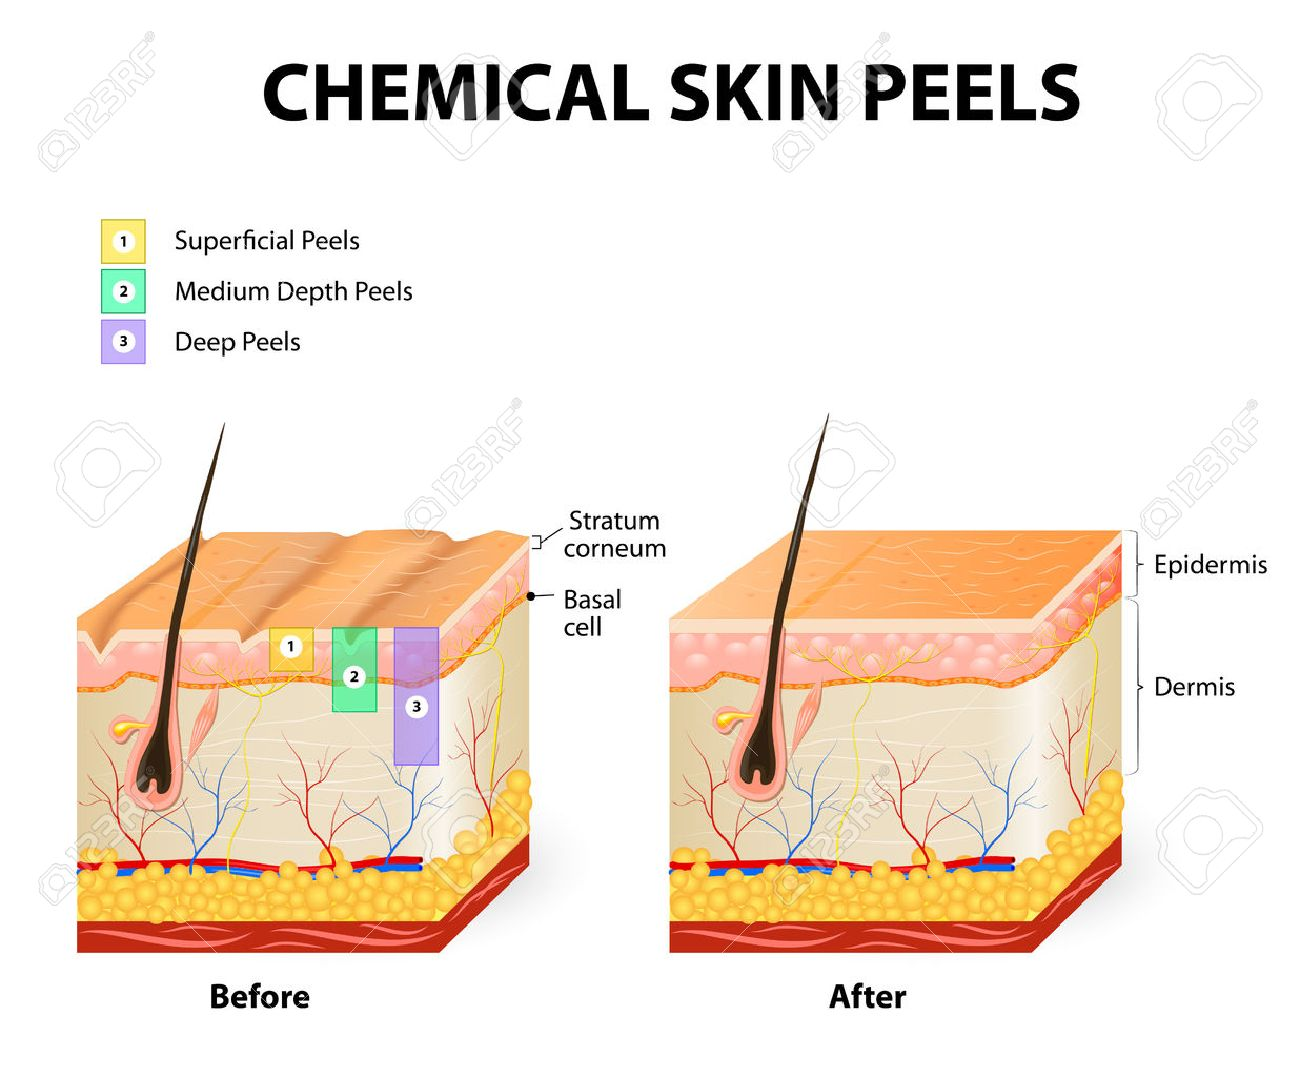 chemical peeling or procedure chemexfoliation  human skin layers stock  vector - 42217827